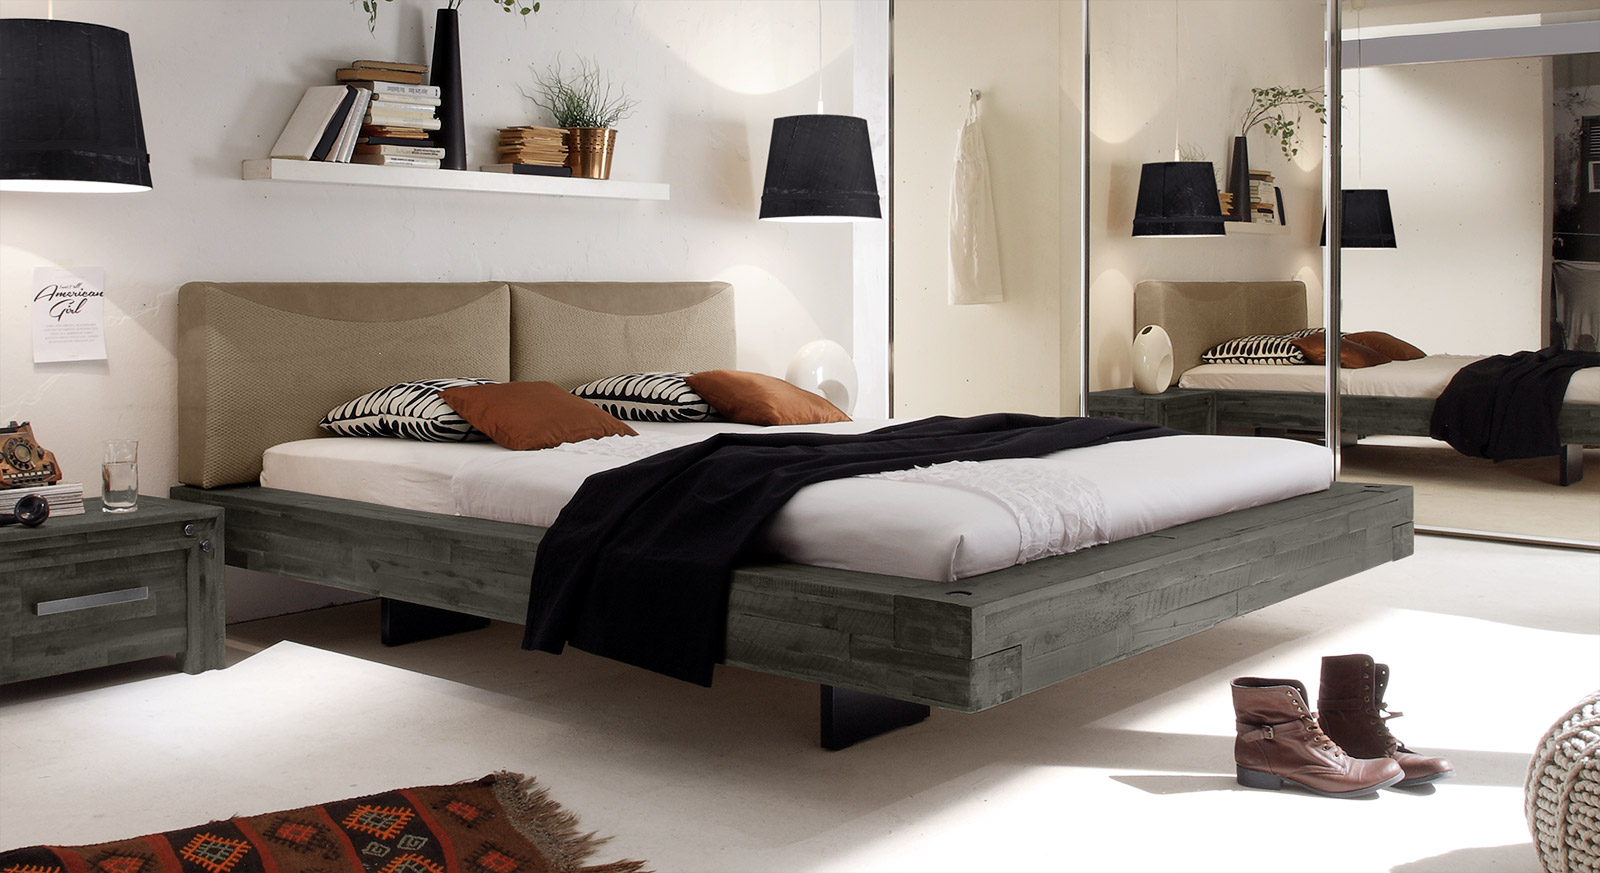 doppelbett schwebend aus akazie gefertigt penco. Black Bedroom Furniture Sets. Home Design Ideas